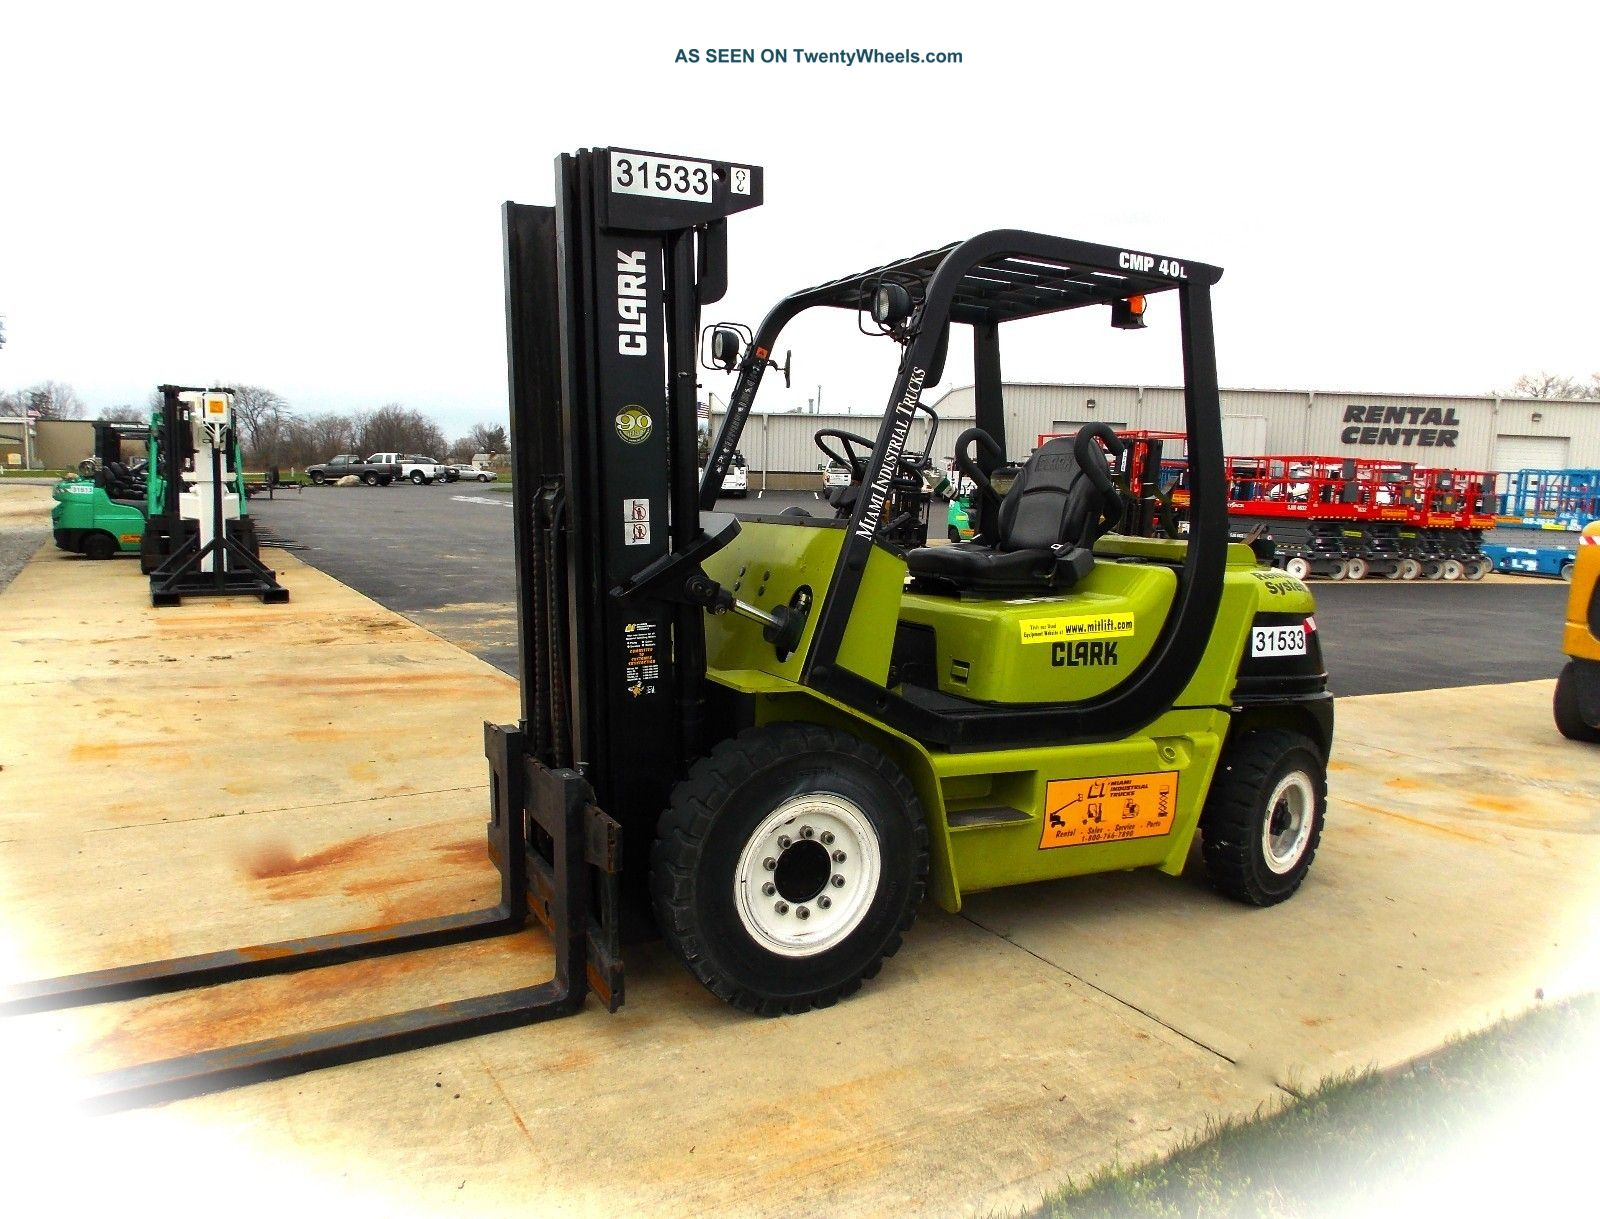 31533 Clark Cmp40l,  8,  000 Lb Capacity Solid Pneumatic Forklift Forklifts & Other Lifts photo